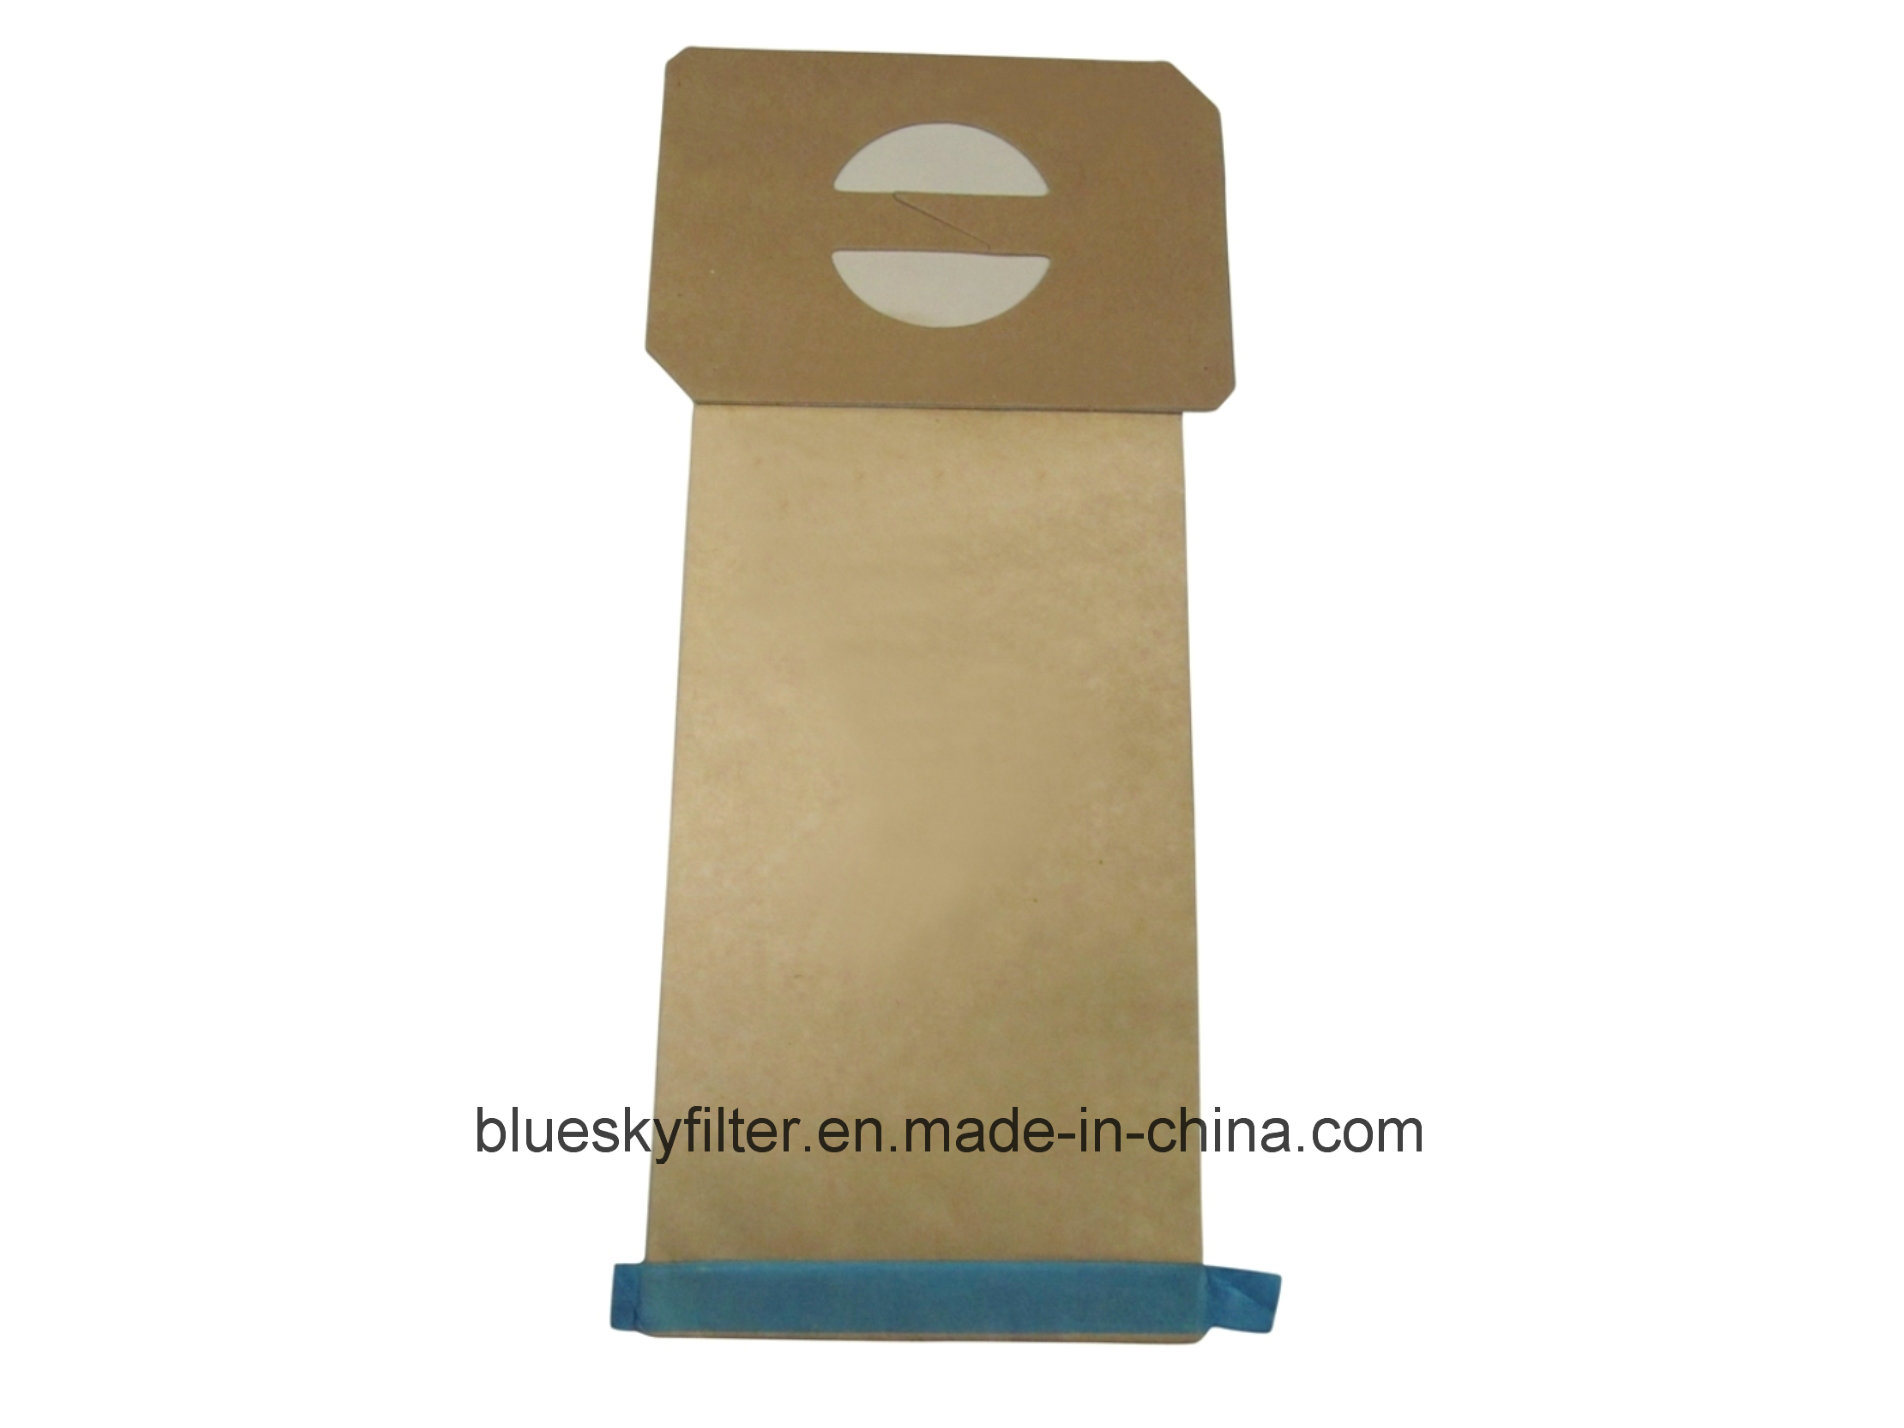 Filter Bag to Fits Aerus / Electrolux Vacuum Cleaner